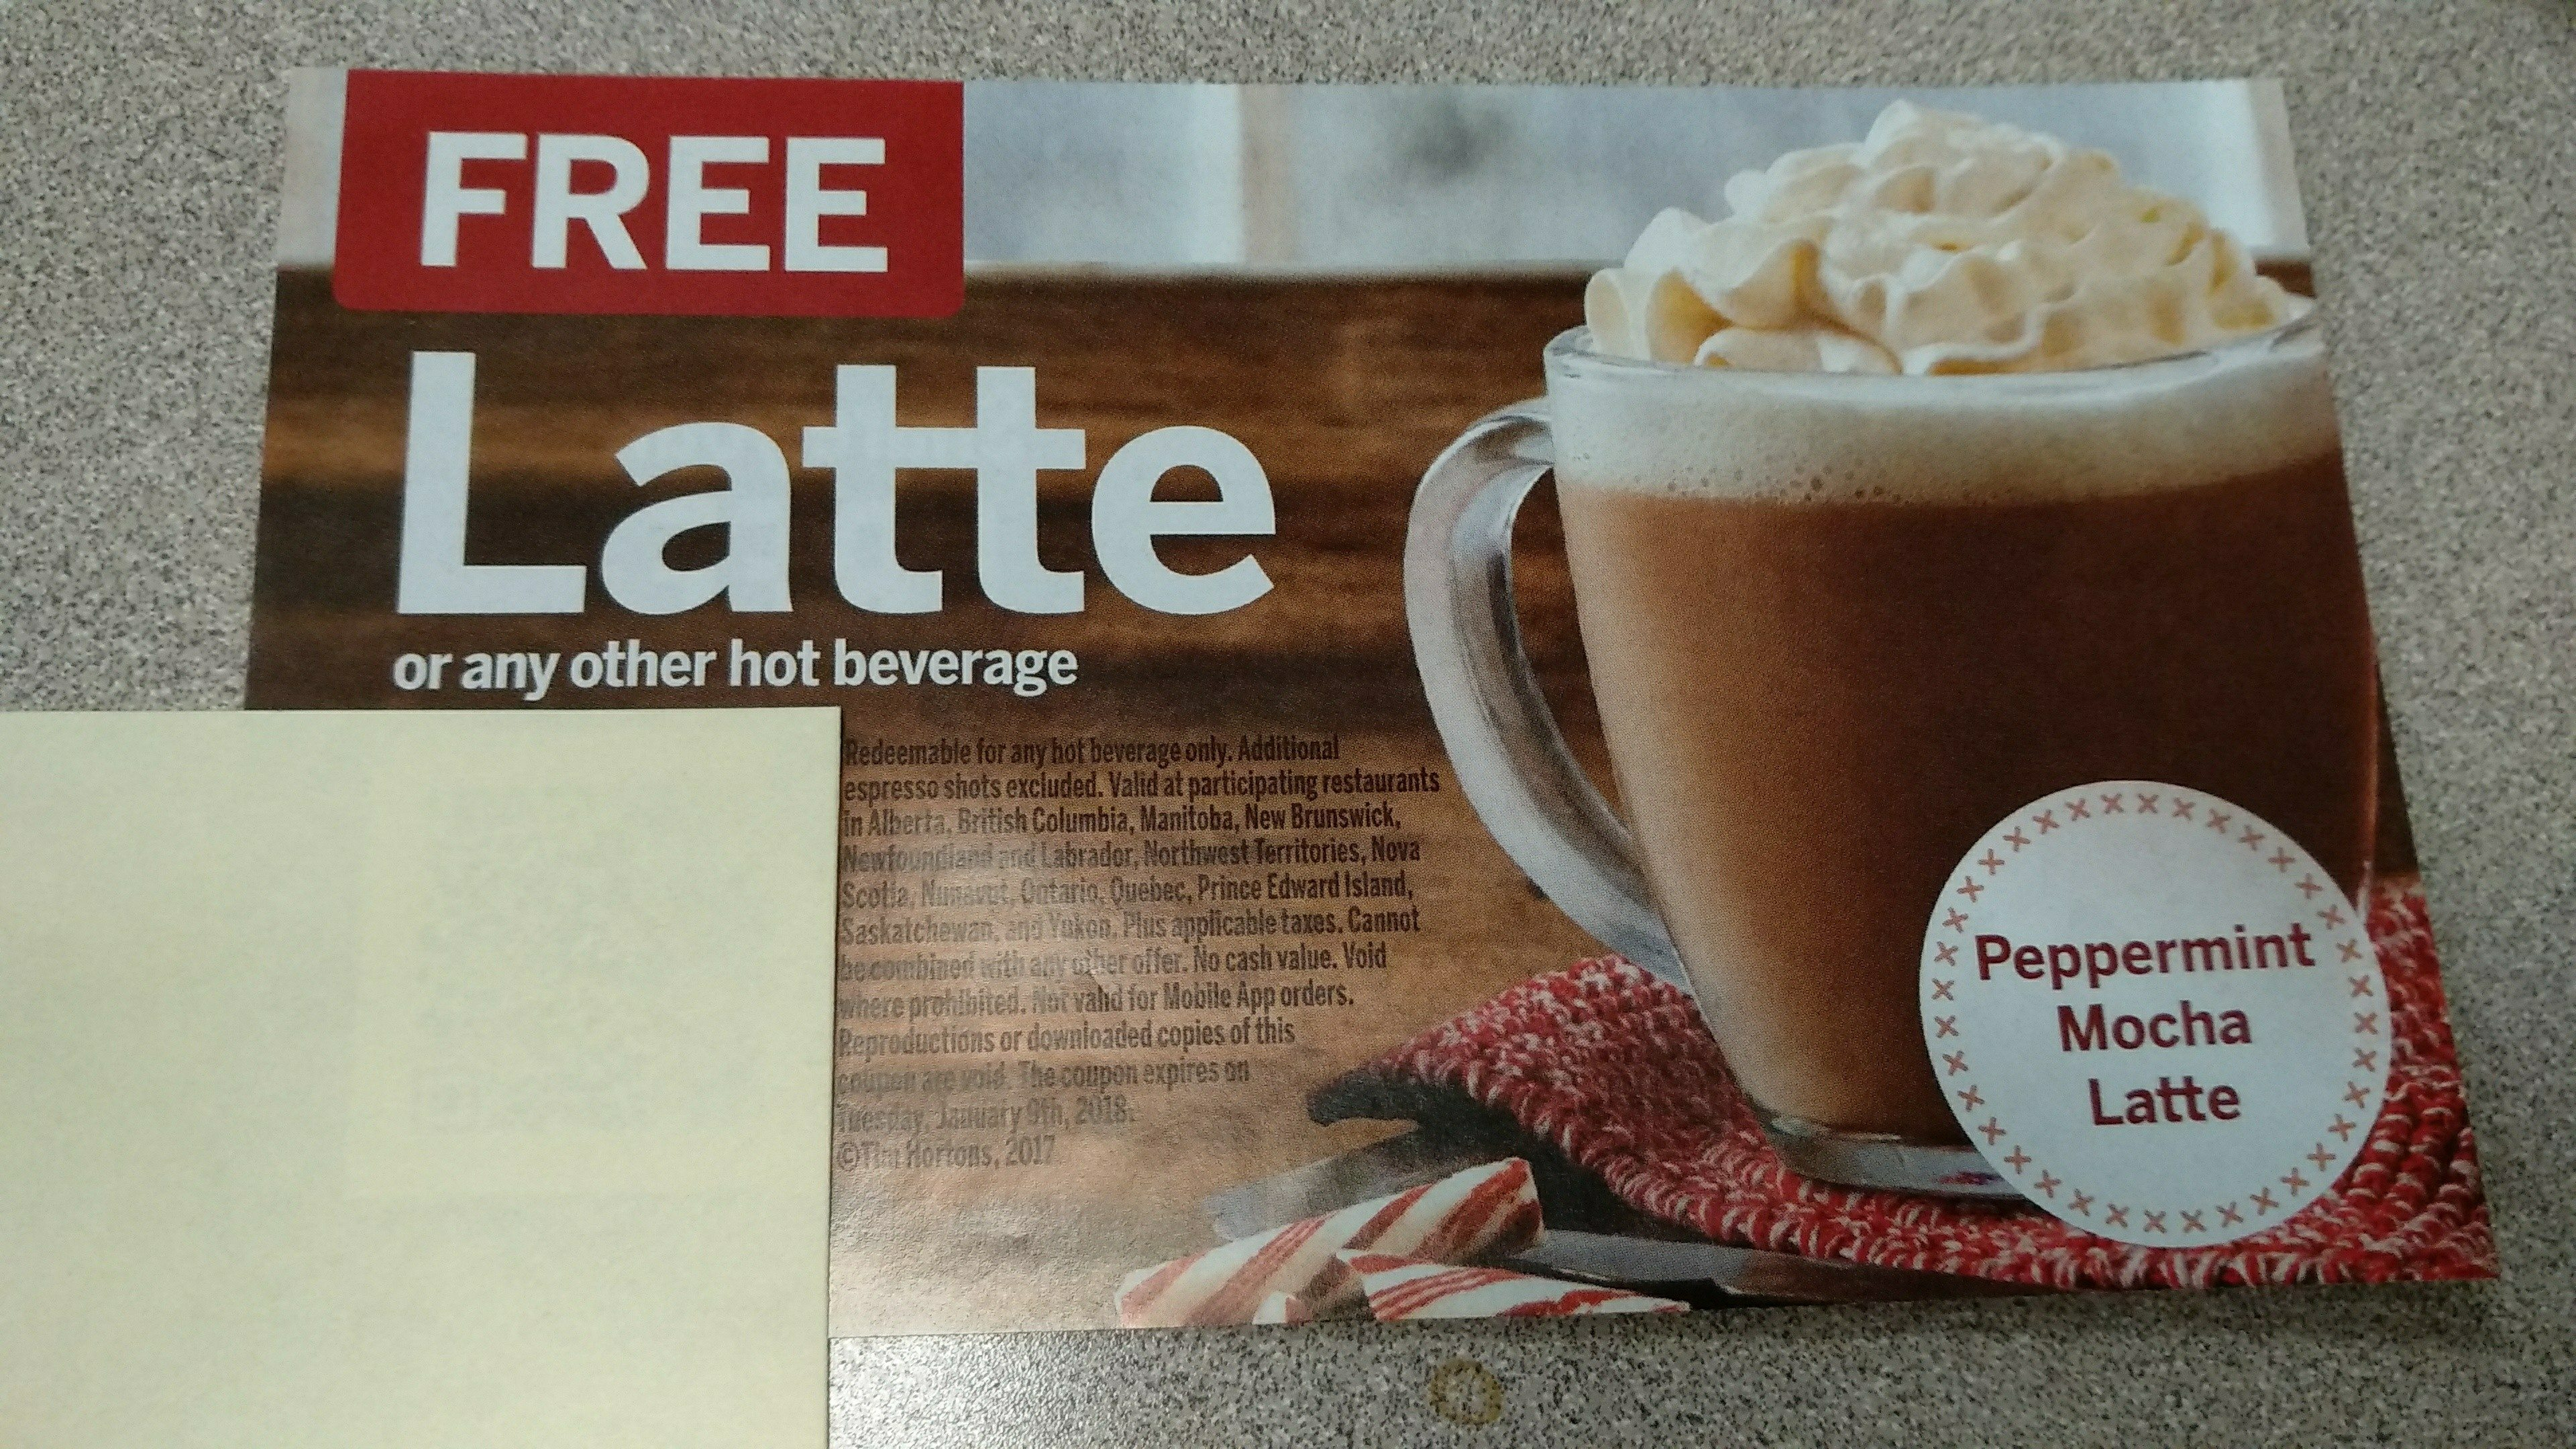 Tim Hortons] HOT! Tim Hortons free Latte or Hot Beverage coupon with